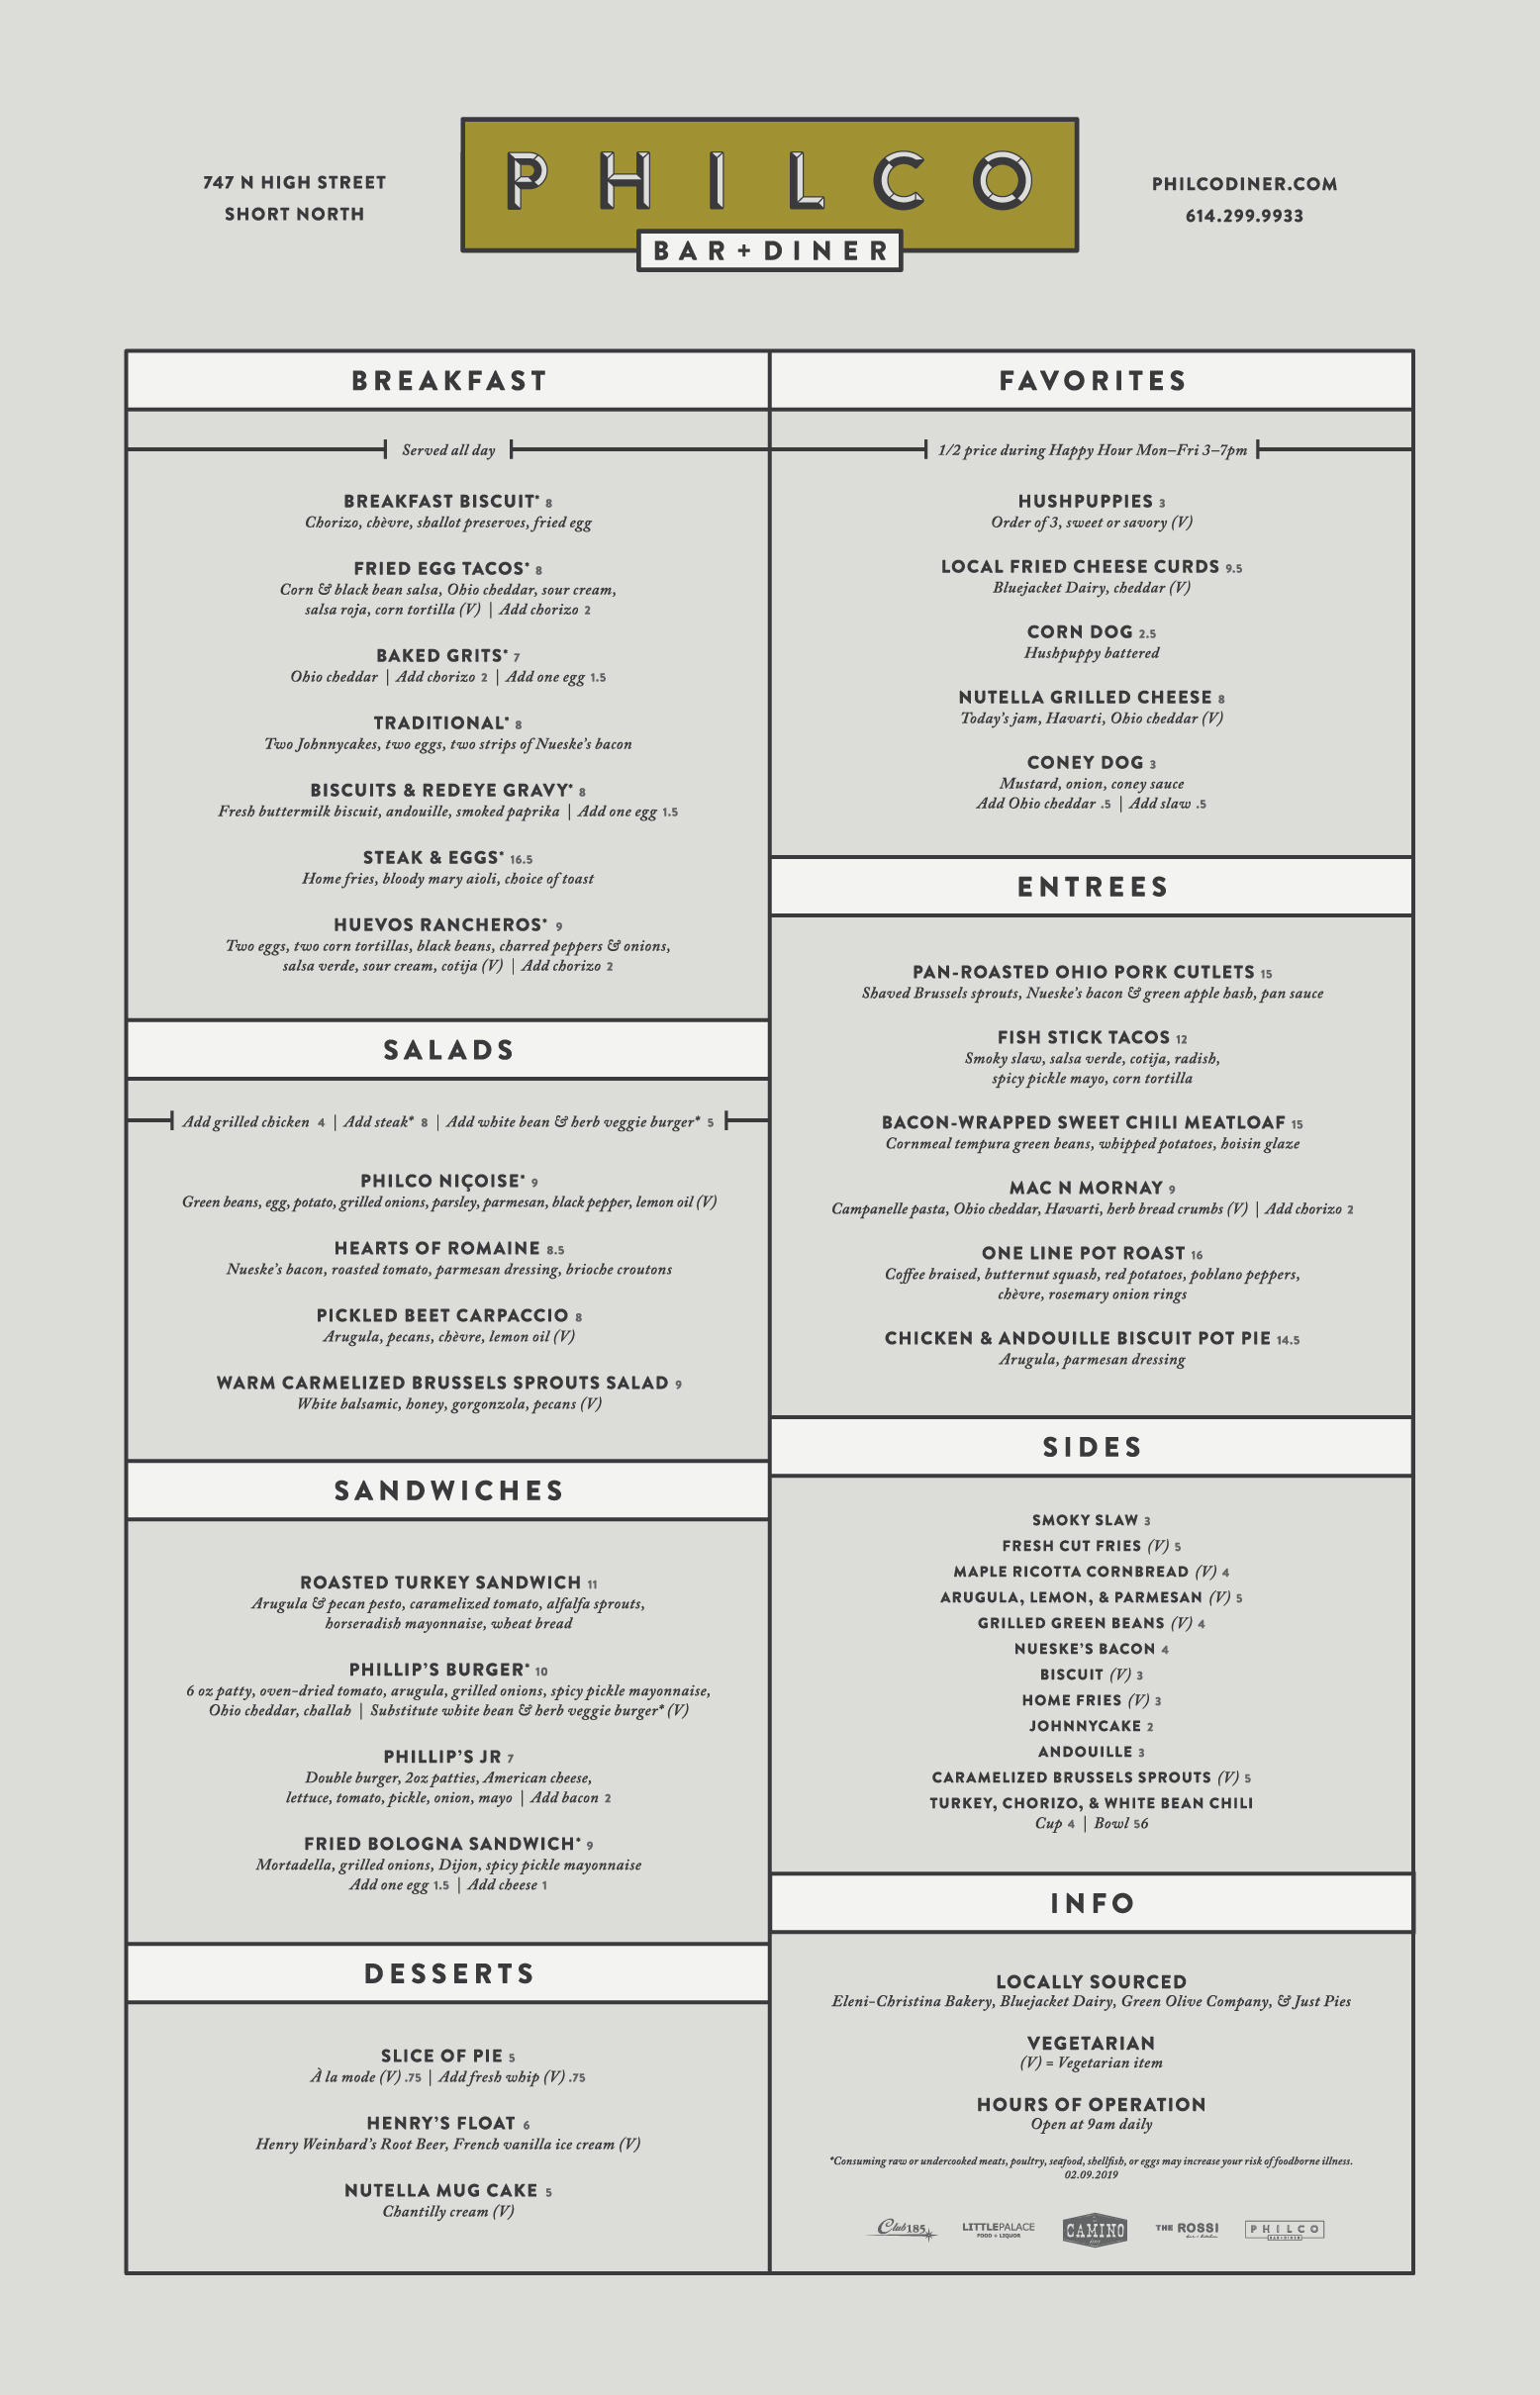 Philco_FoodMenu_02-09-19.jpg